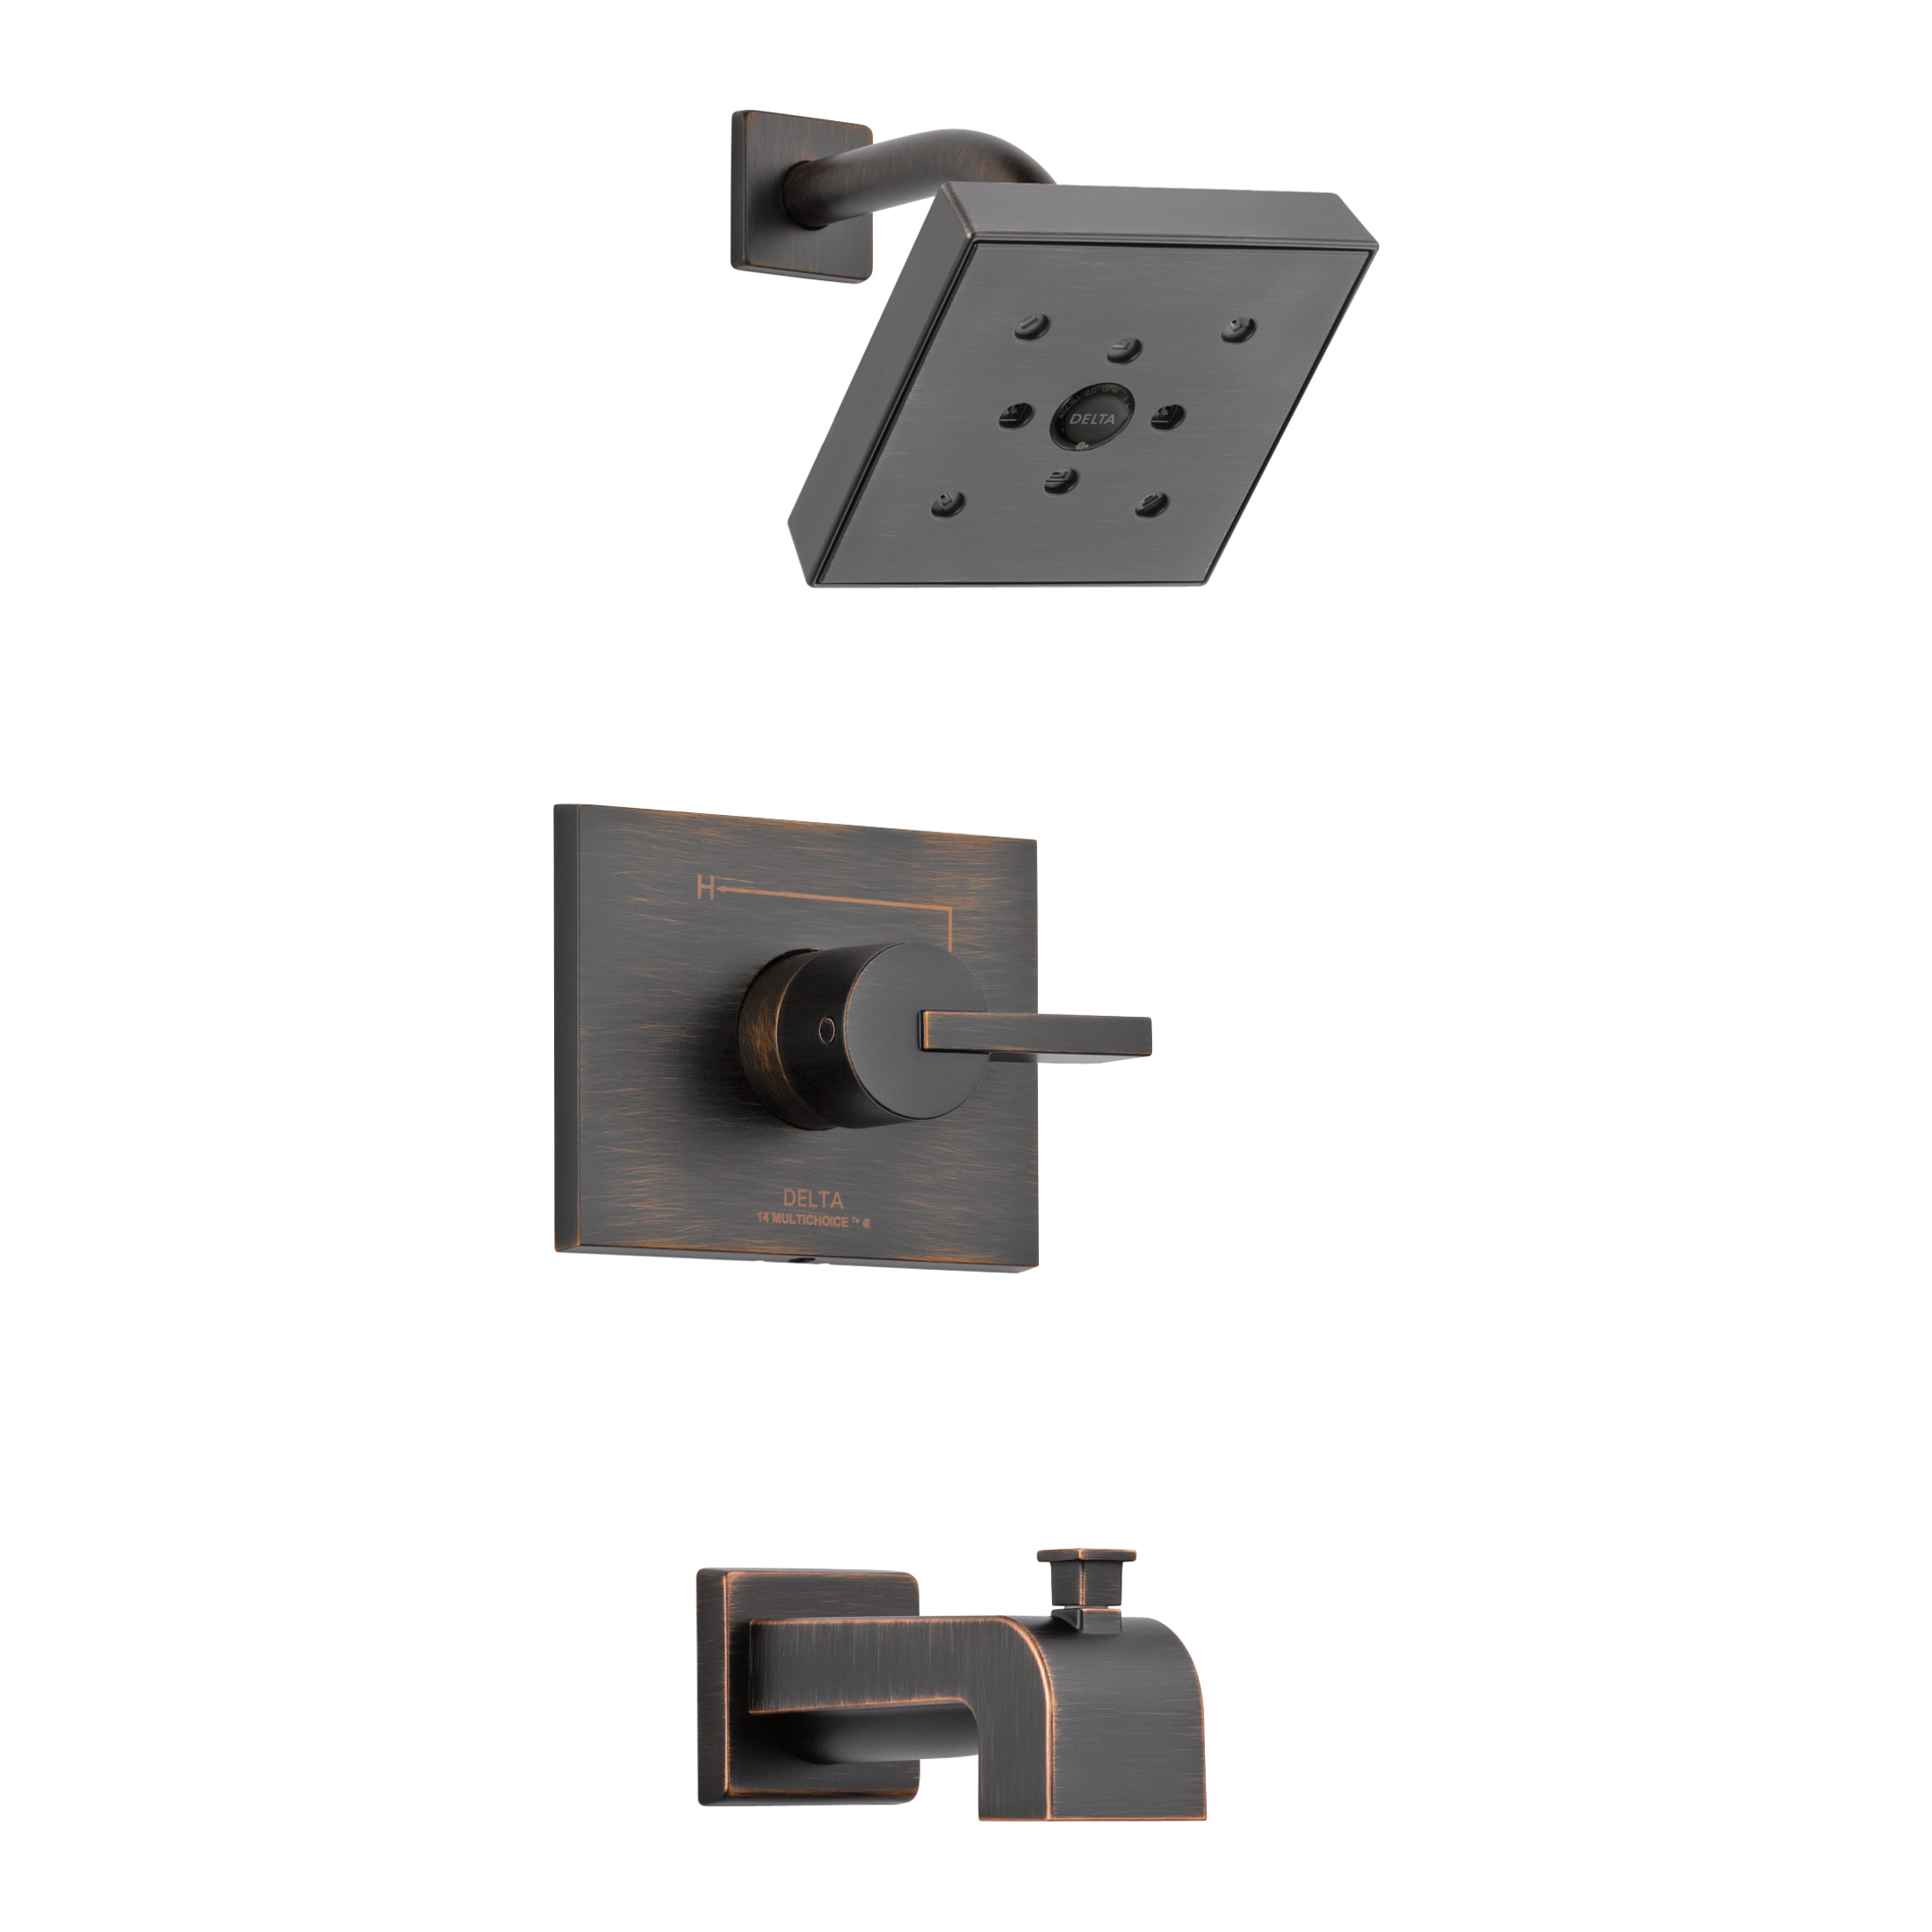 DELTA® T14453-RBH2O Monitor® 14 Tub and Shower Trim, 1.75 gpm Shower, Hand Shower Yes/No: No, Venetian Bronze